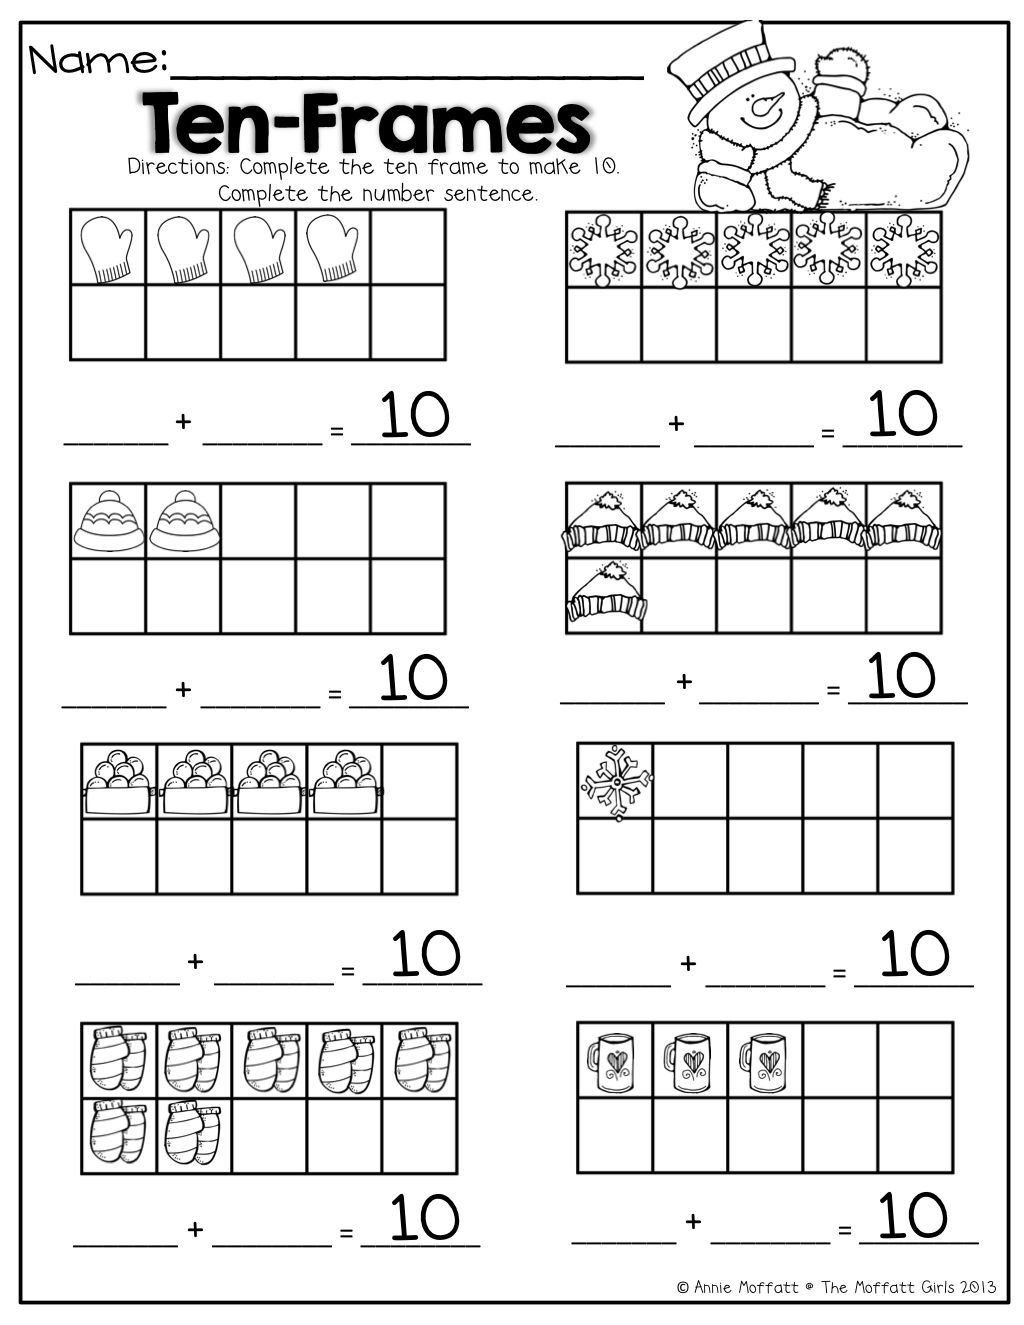 Typing Worksheets Printables Typekids Online Typing Course for Kids Adventures In